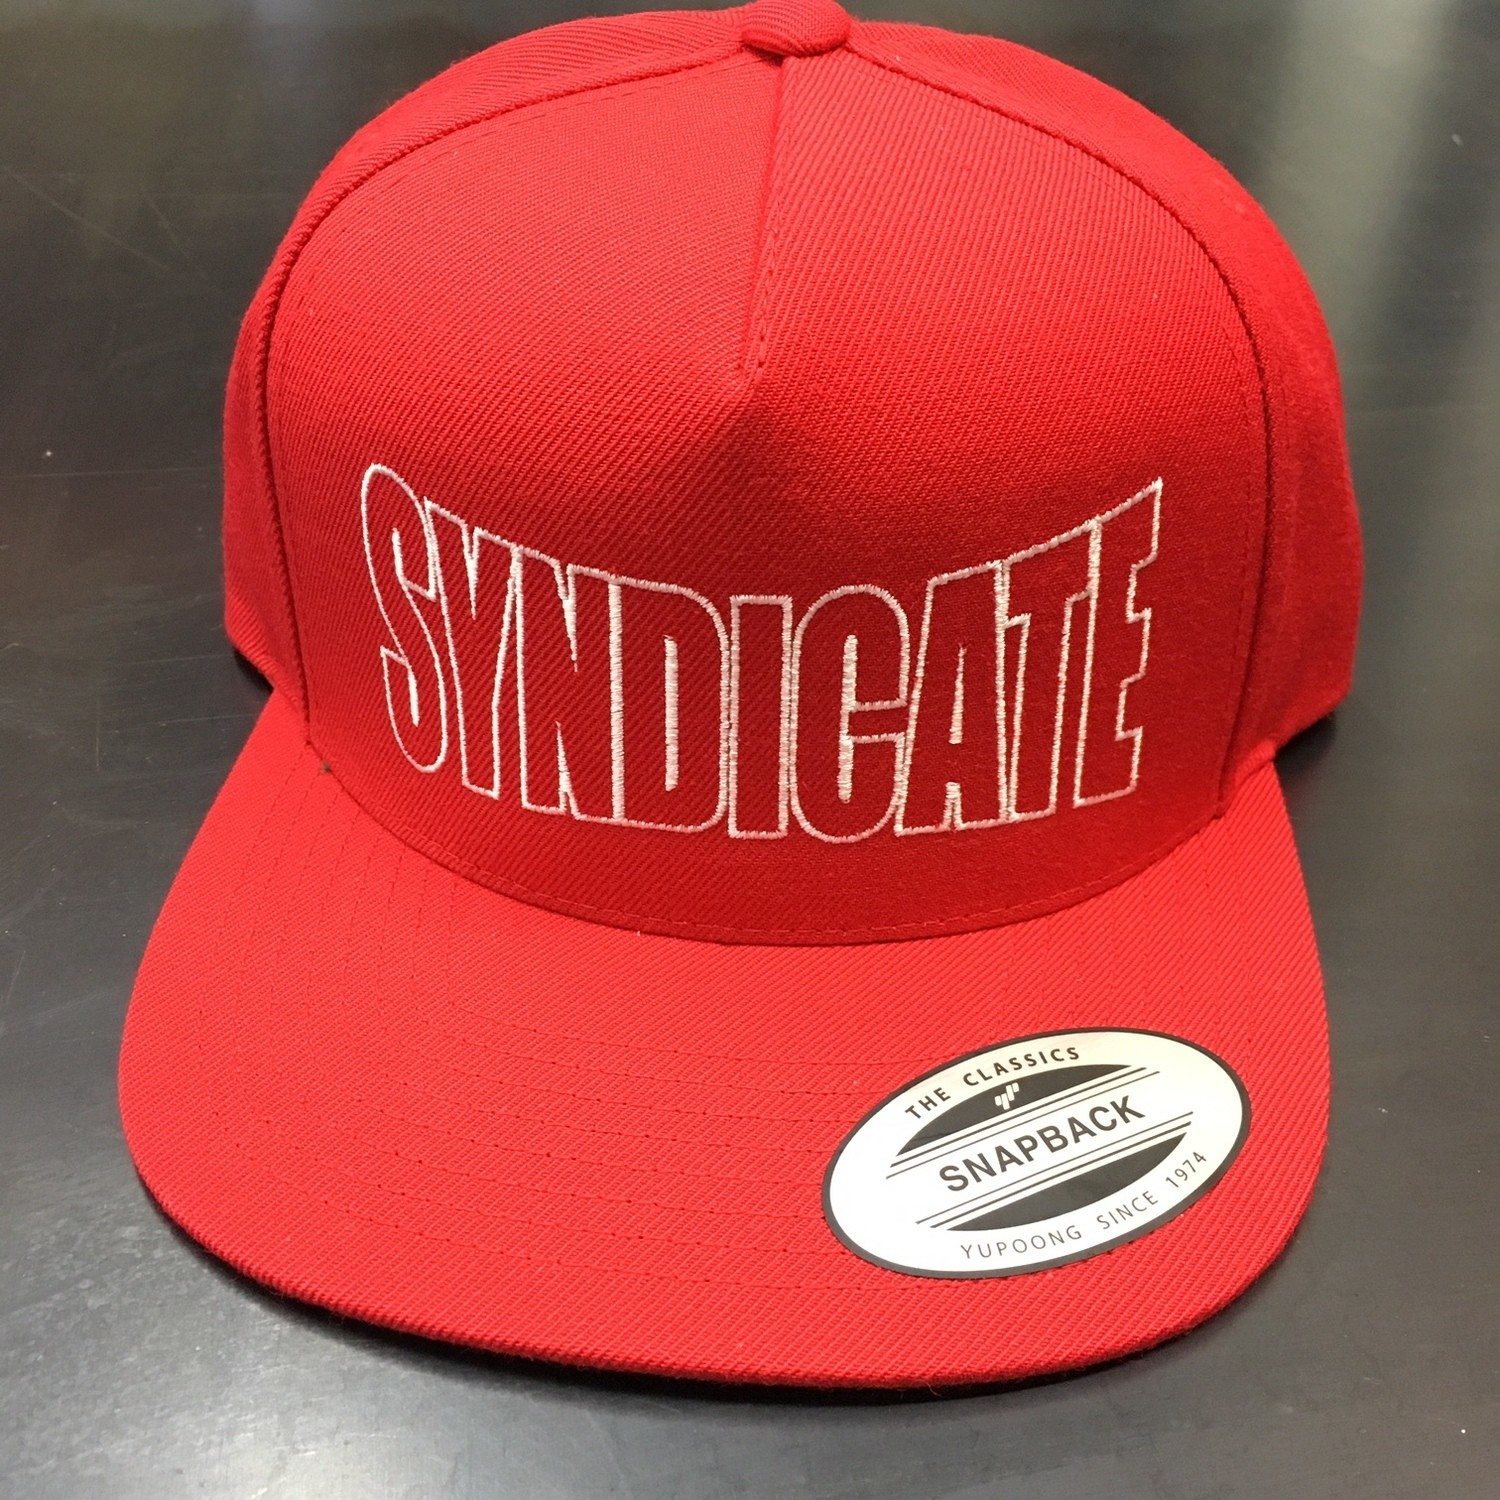 RED SYNDICATE SNAPBACK